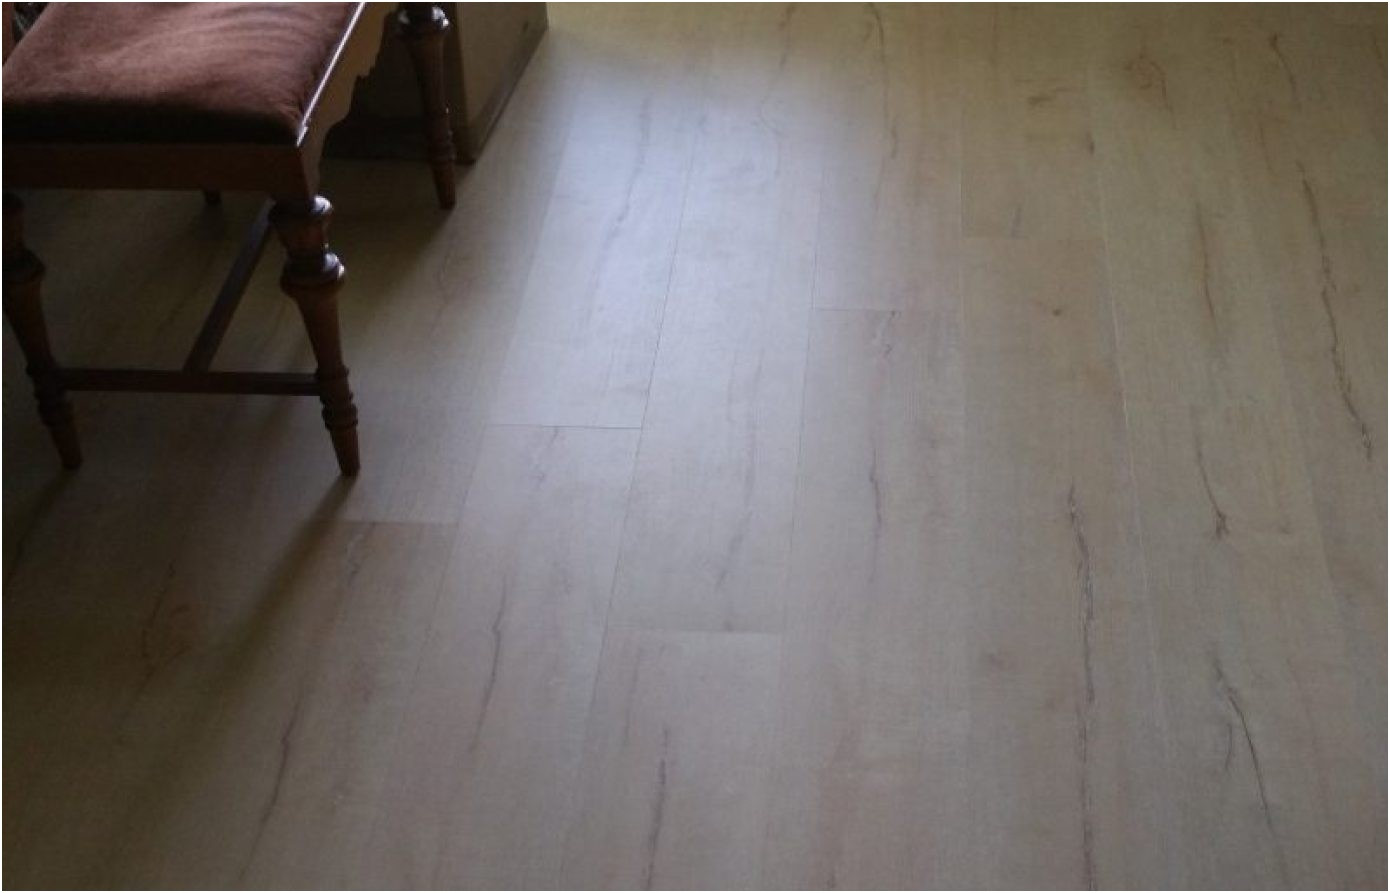 best cleaner for hand scraped hardwood floors of how to install allure vinyl plank flooring unique best way to clean throughout how to install allure vinyl plank flooring unique best way to clean vinyl plank floors luxury